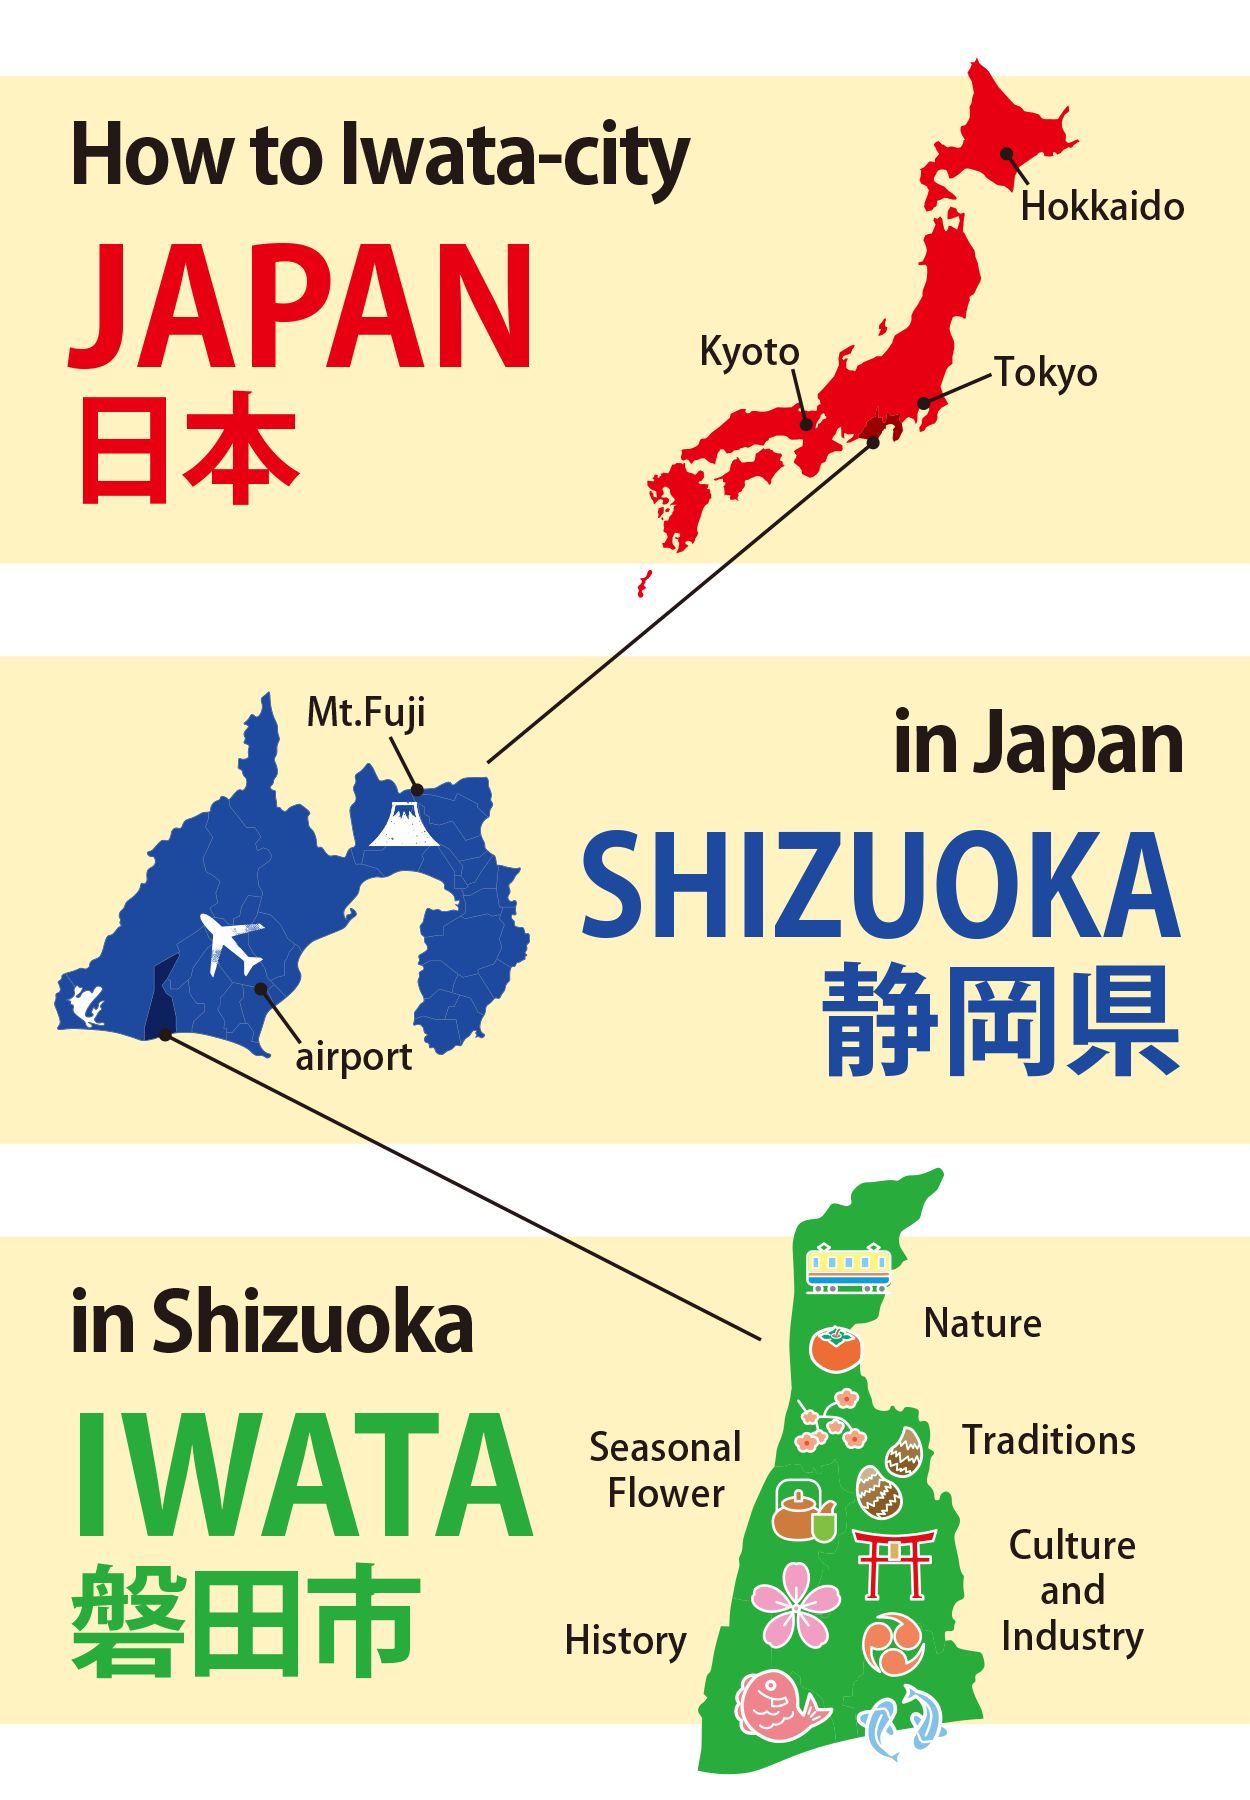 Iwata city is in Japan